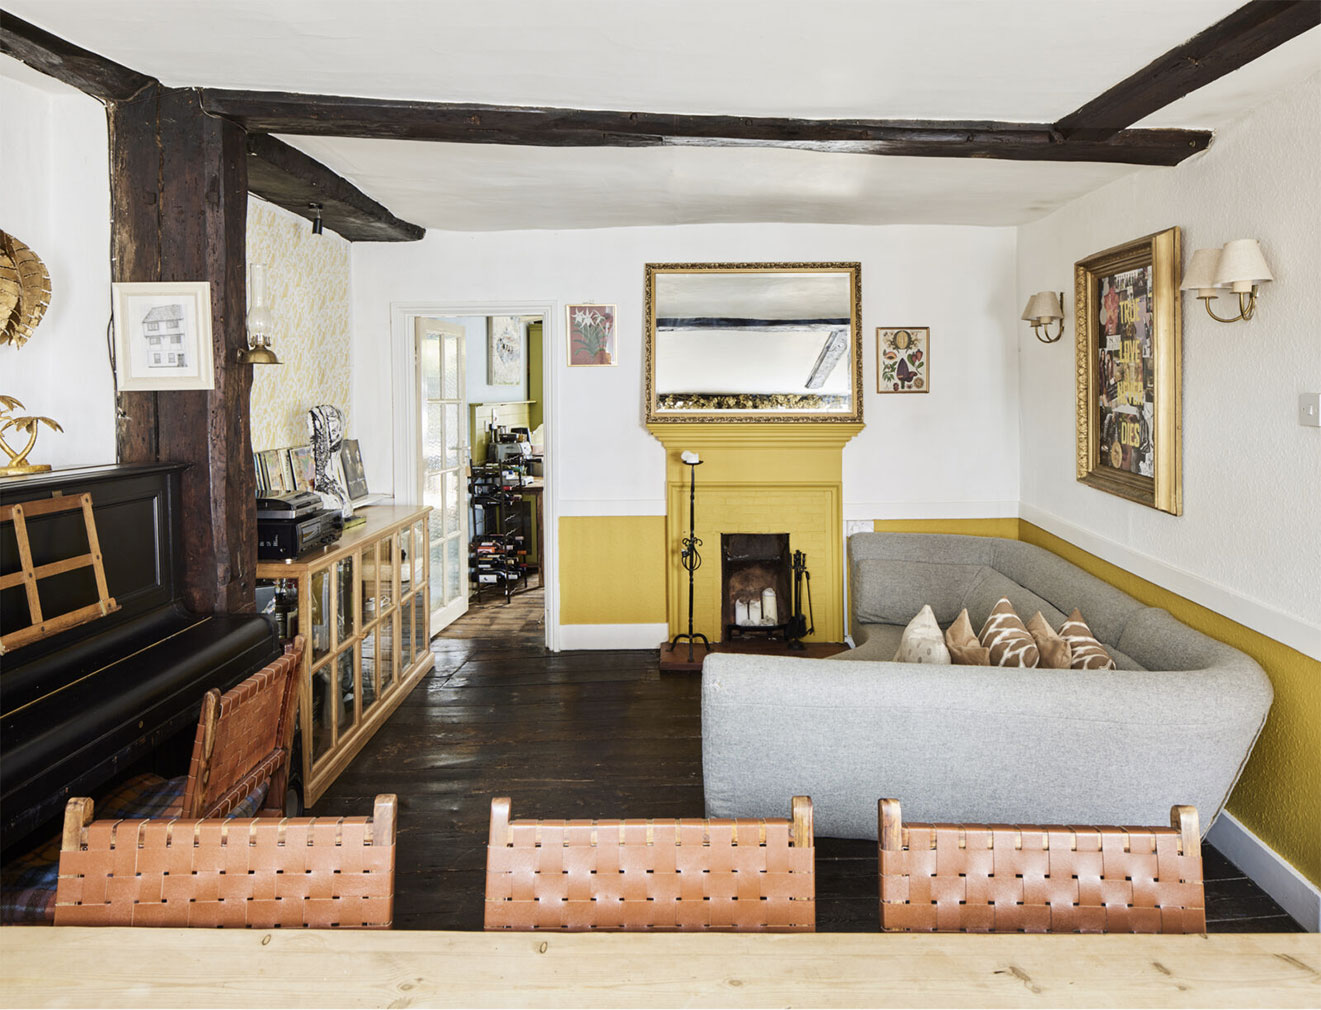 The main living room features an open fireplace and exposed timbers and wood floors